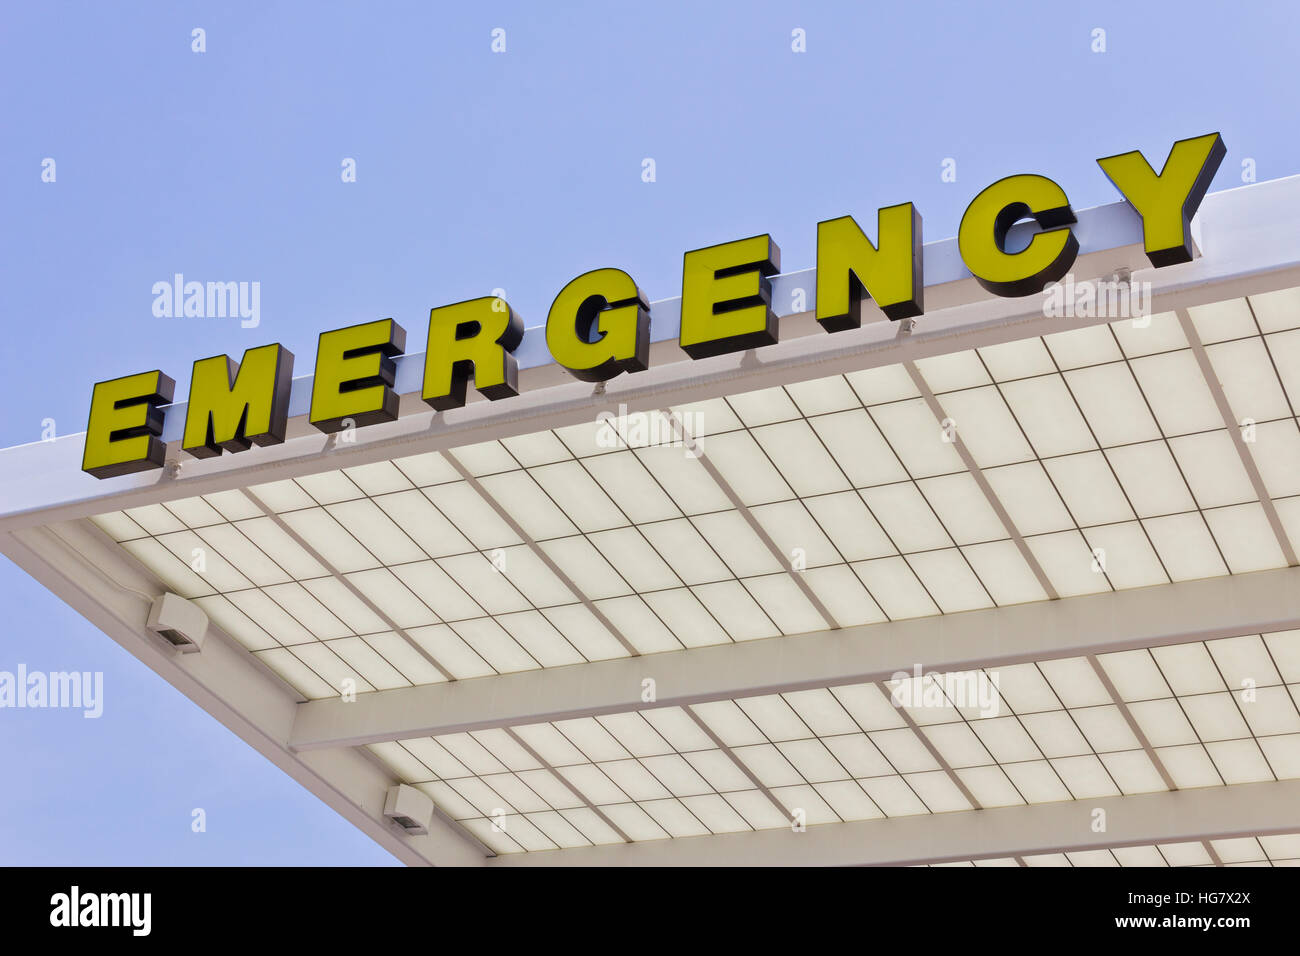 Yellow Emergency Entrance Sign for a Local Hospital VI - Stock Image